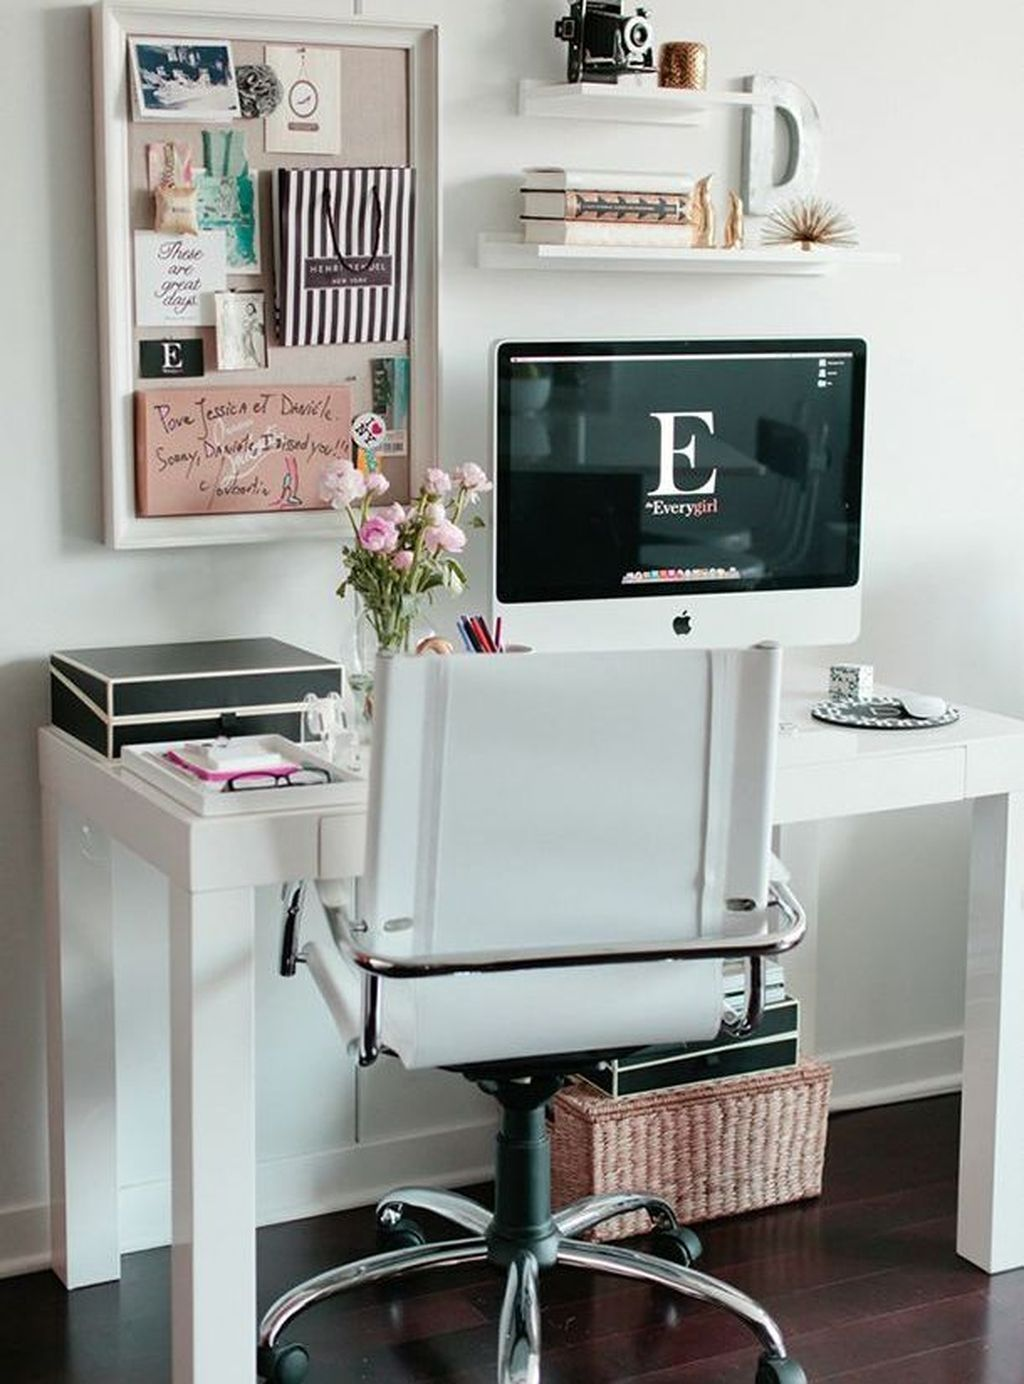 49 Beautiful Small Work Office Decorating Ideas With Images